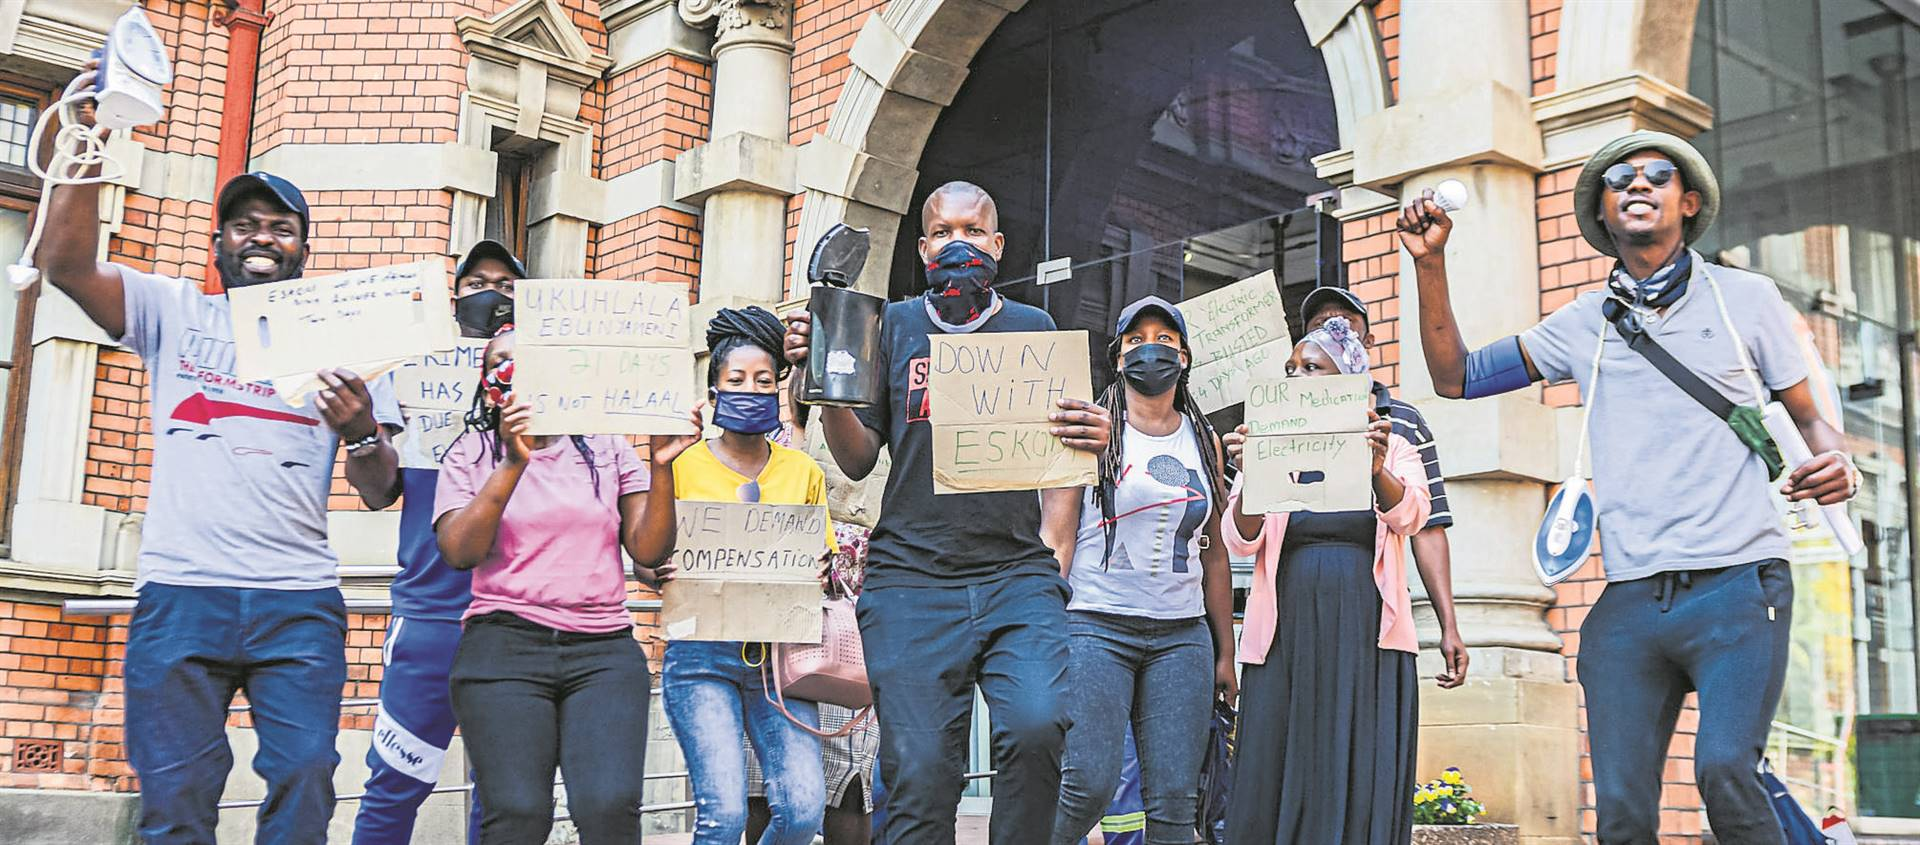 Azalea residents protest outside the Pietermaritzburg City Hall on Tuesday over not having electricity.